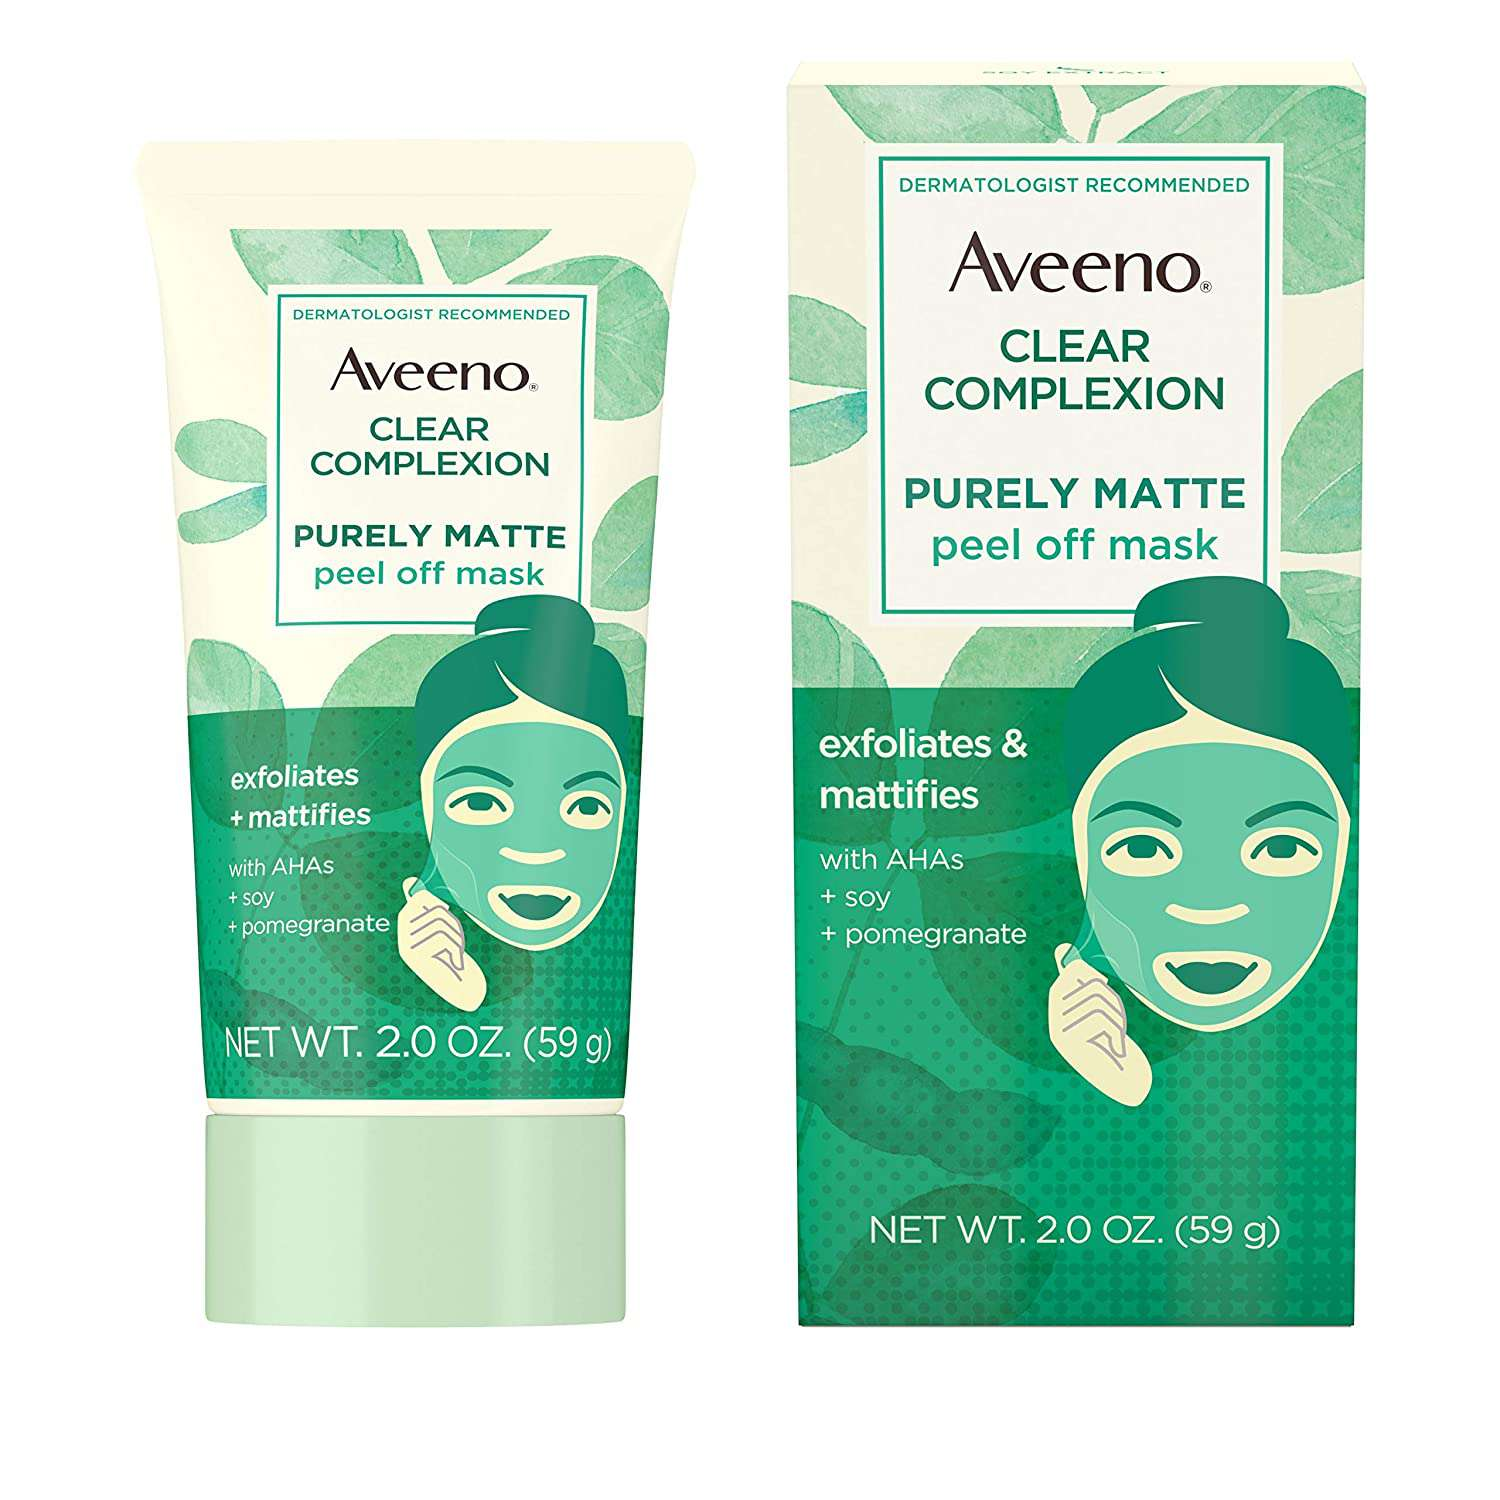 Aveeno Clear Complexion Purely Matte Peel Off Face Mask